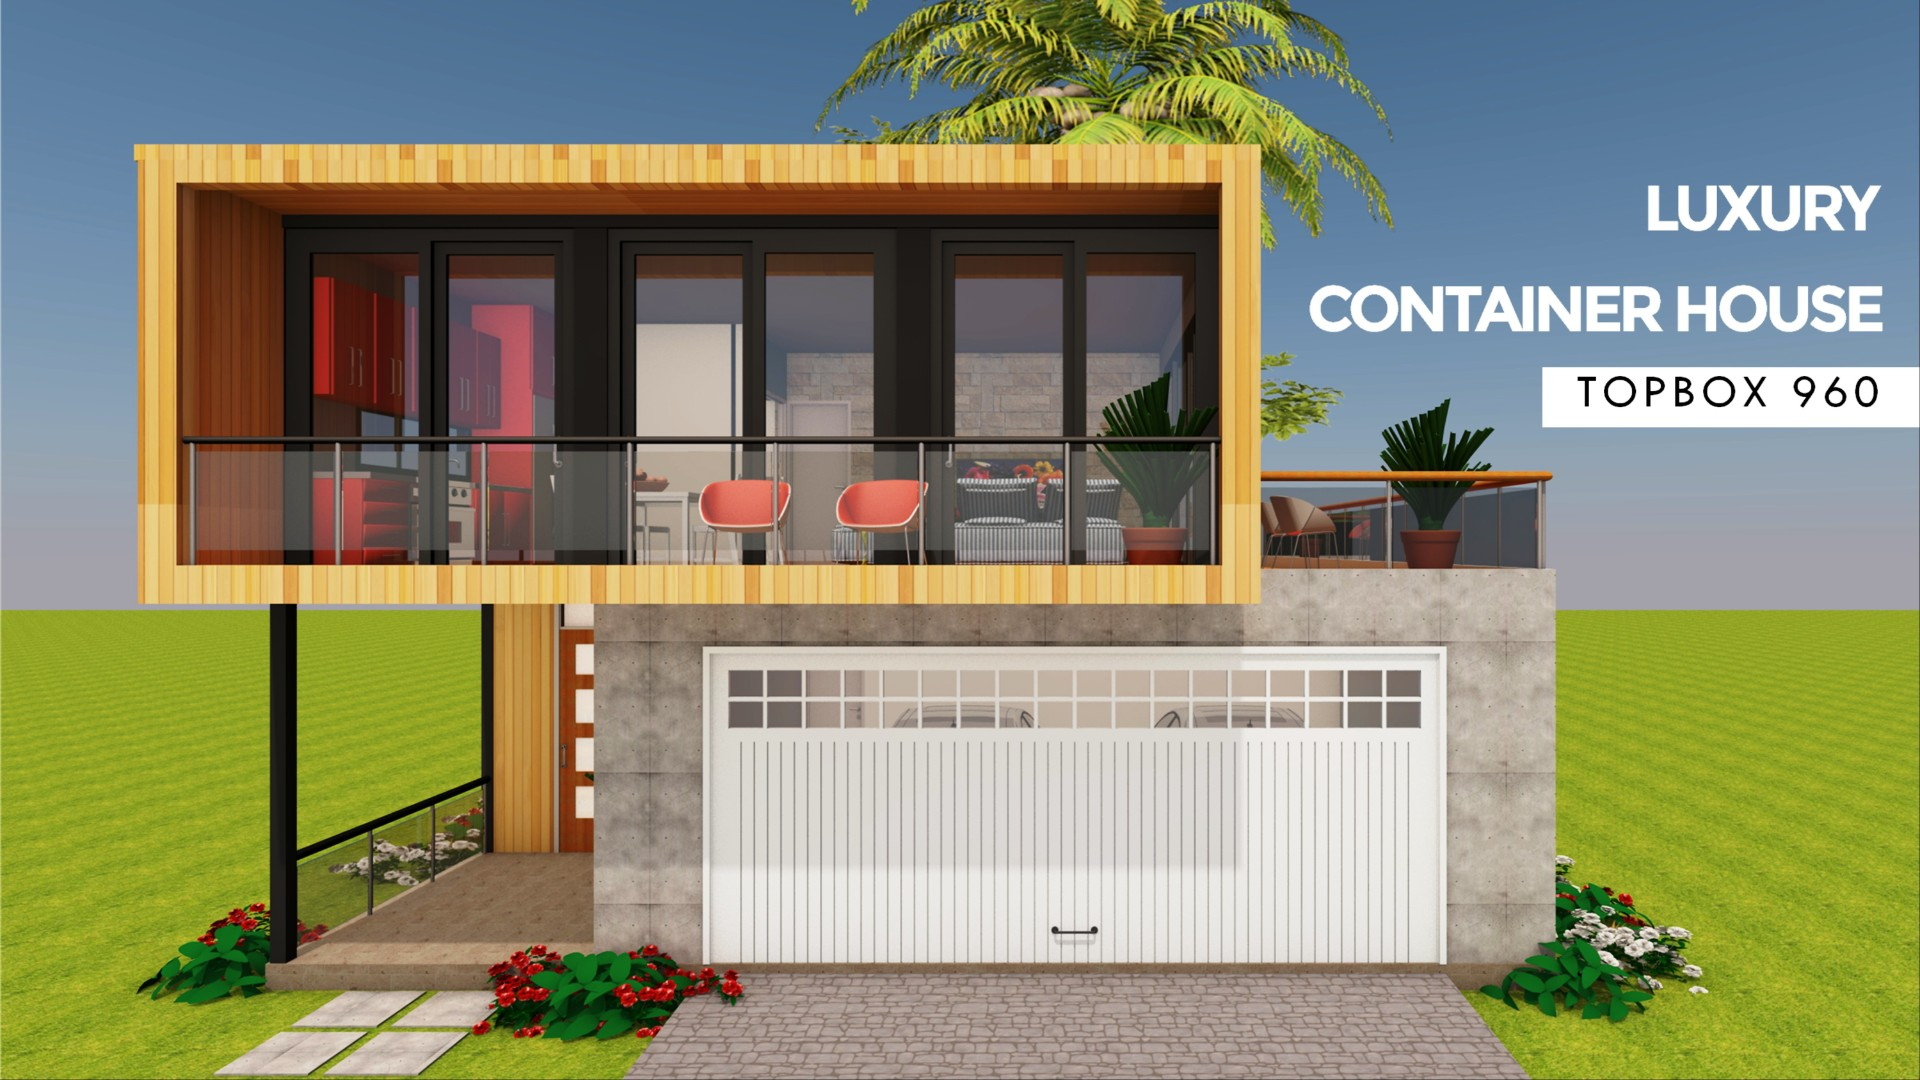 Modern Shipping Container Home topbox 960 | id. s2432960 | 4 beds | 3 baths | 960+sft.|